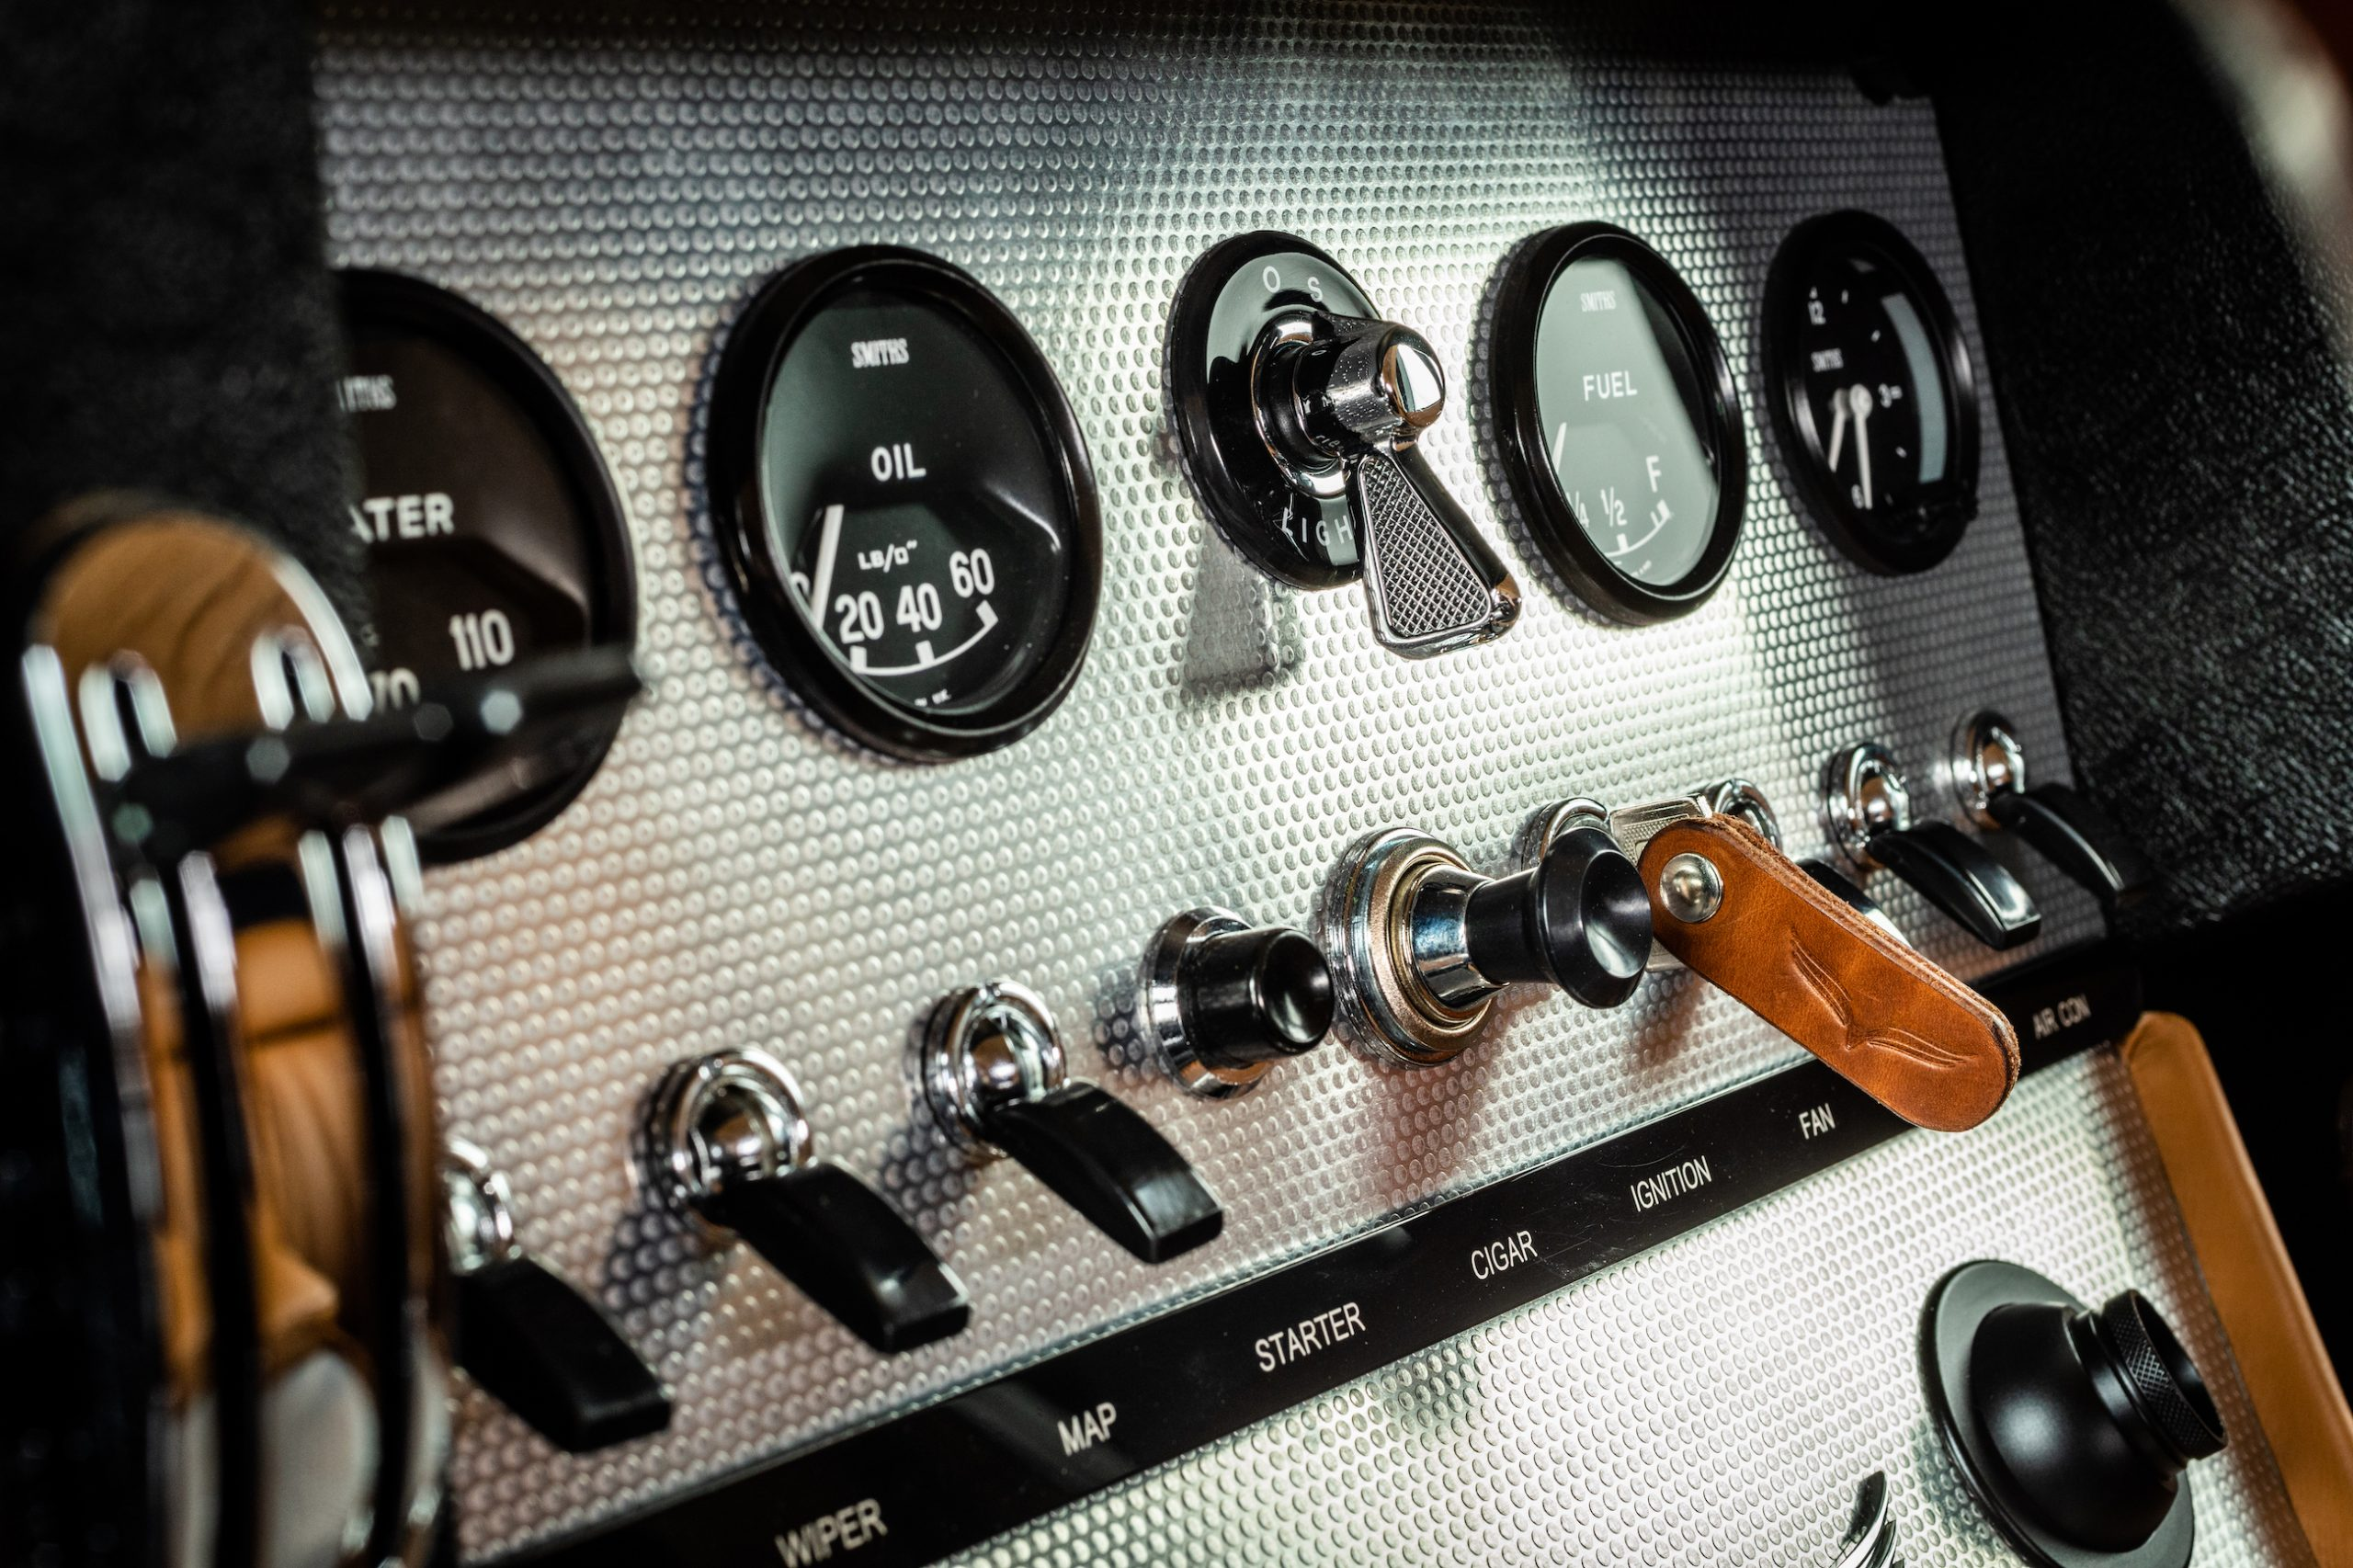 Eagle E-type Lightweight GT Knobs And Levers